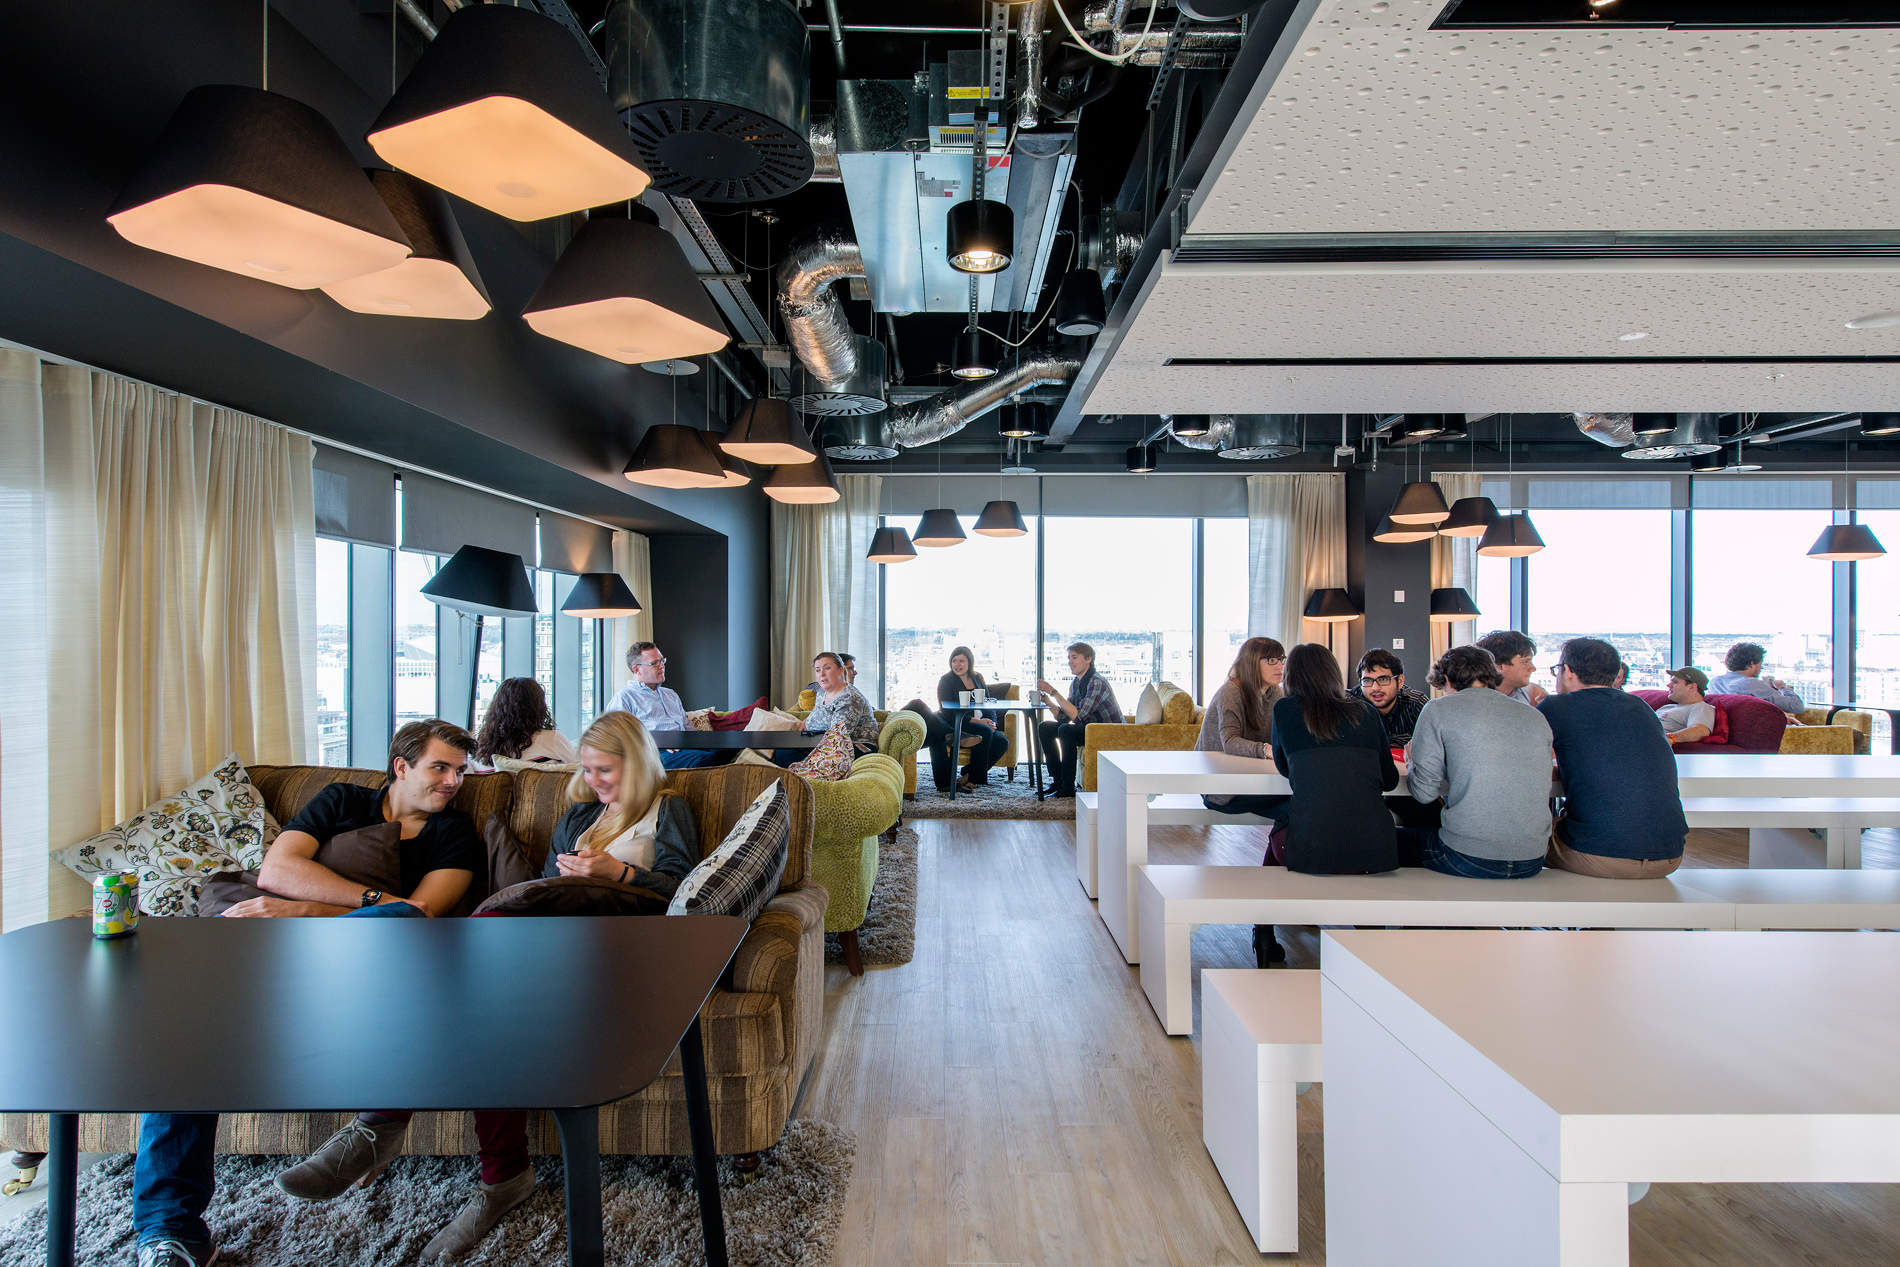 google office in zurich dock fooddock food restaurant leisure architecture technology design camenzind evolution awesome previously unpublished photos google